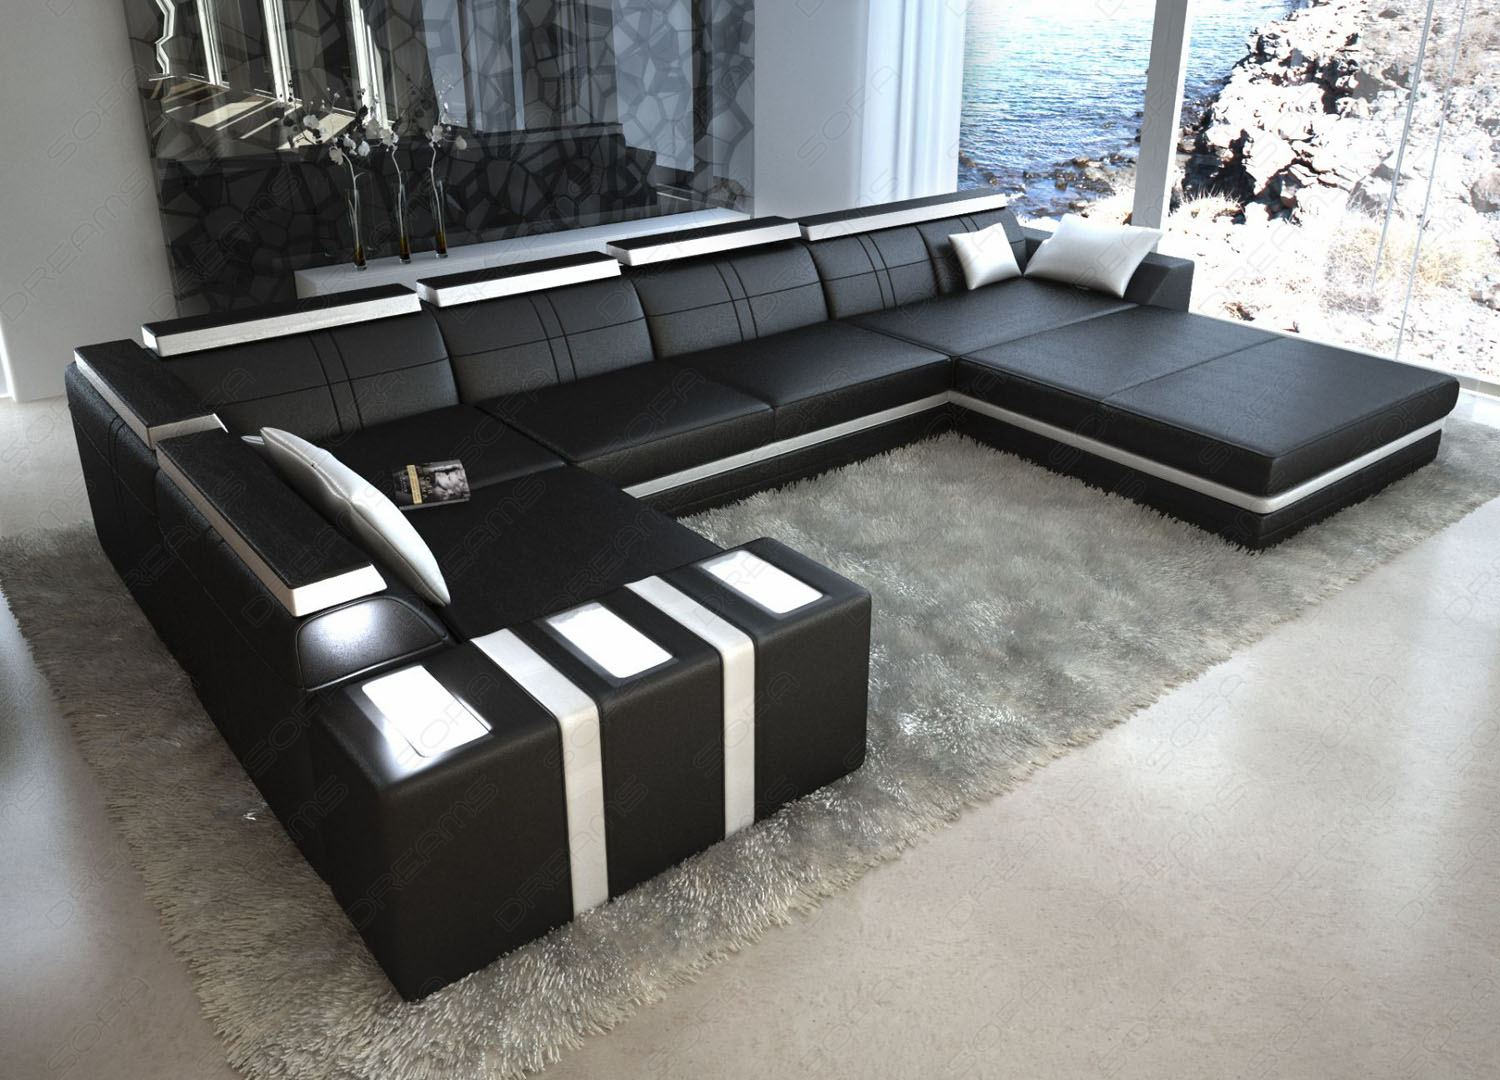 ledersofa asti u form schwarz weiss wohnlandschaft mit. Black Bedroom Furniture Sets. Home Design Ideas